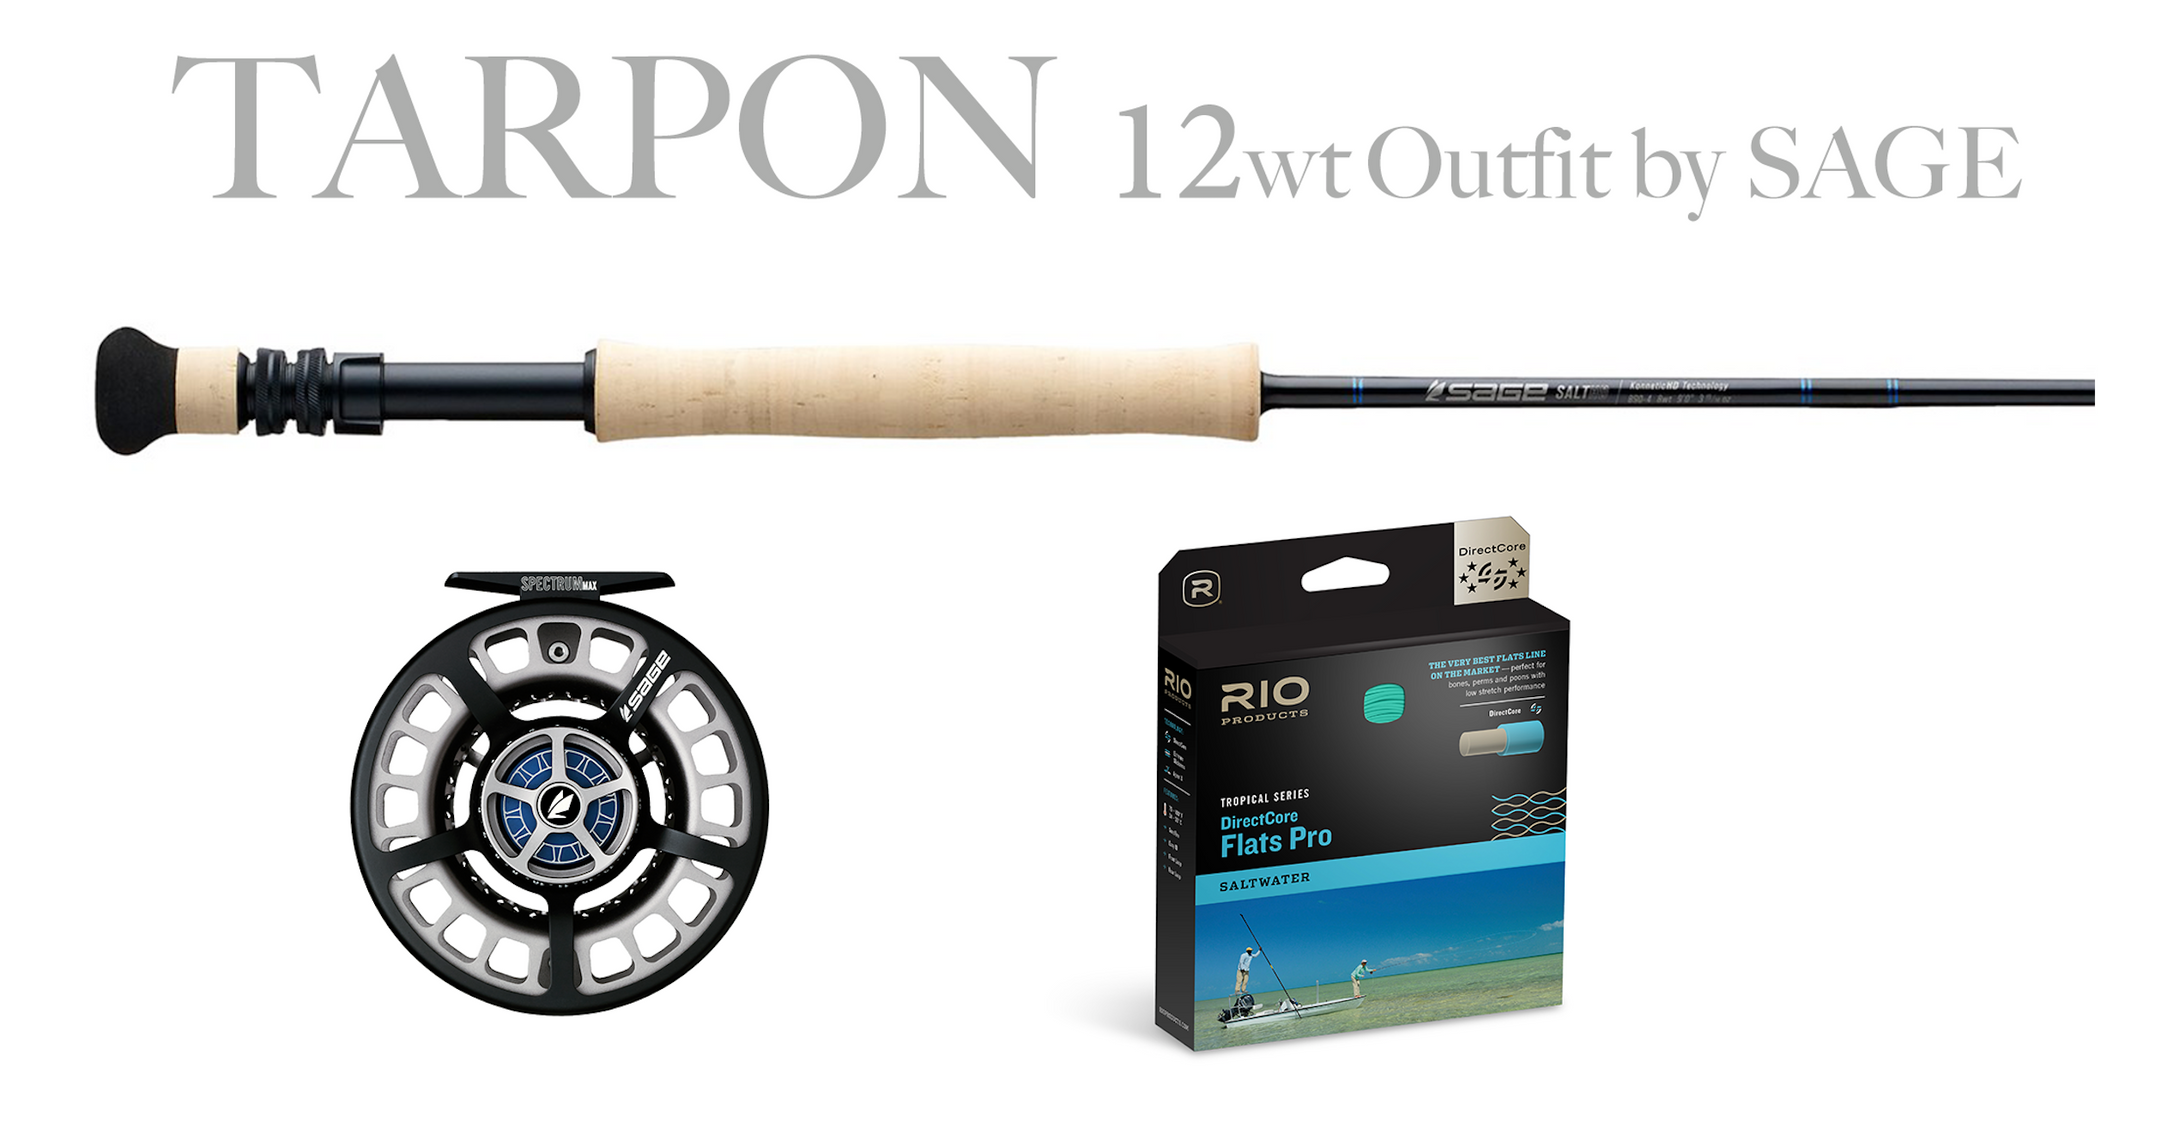 Sage TARPON Combo 12wt - SALT HD Fly Rod 12wt + Spectrum MAX Reel (11/12)